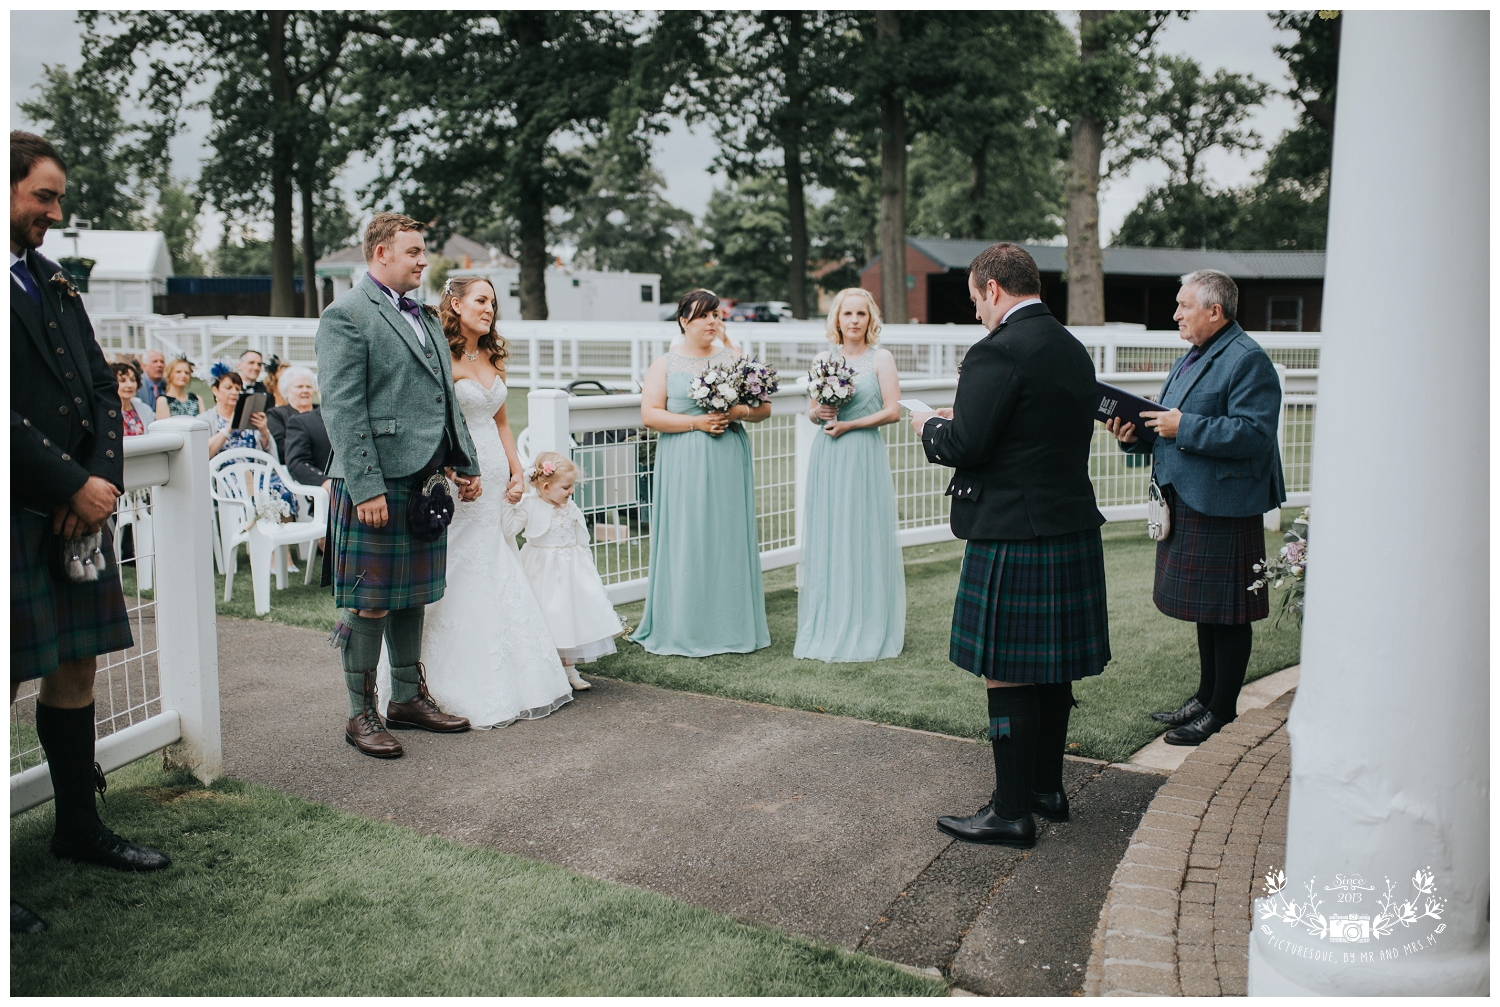 Hamilton Park Racecourse  wedding photography, Picturesque by Mr and Mrs M_0035.jpg